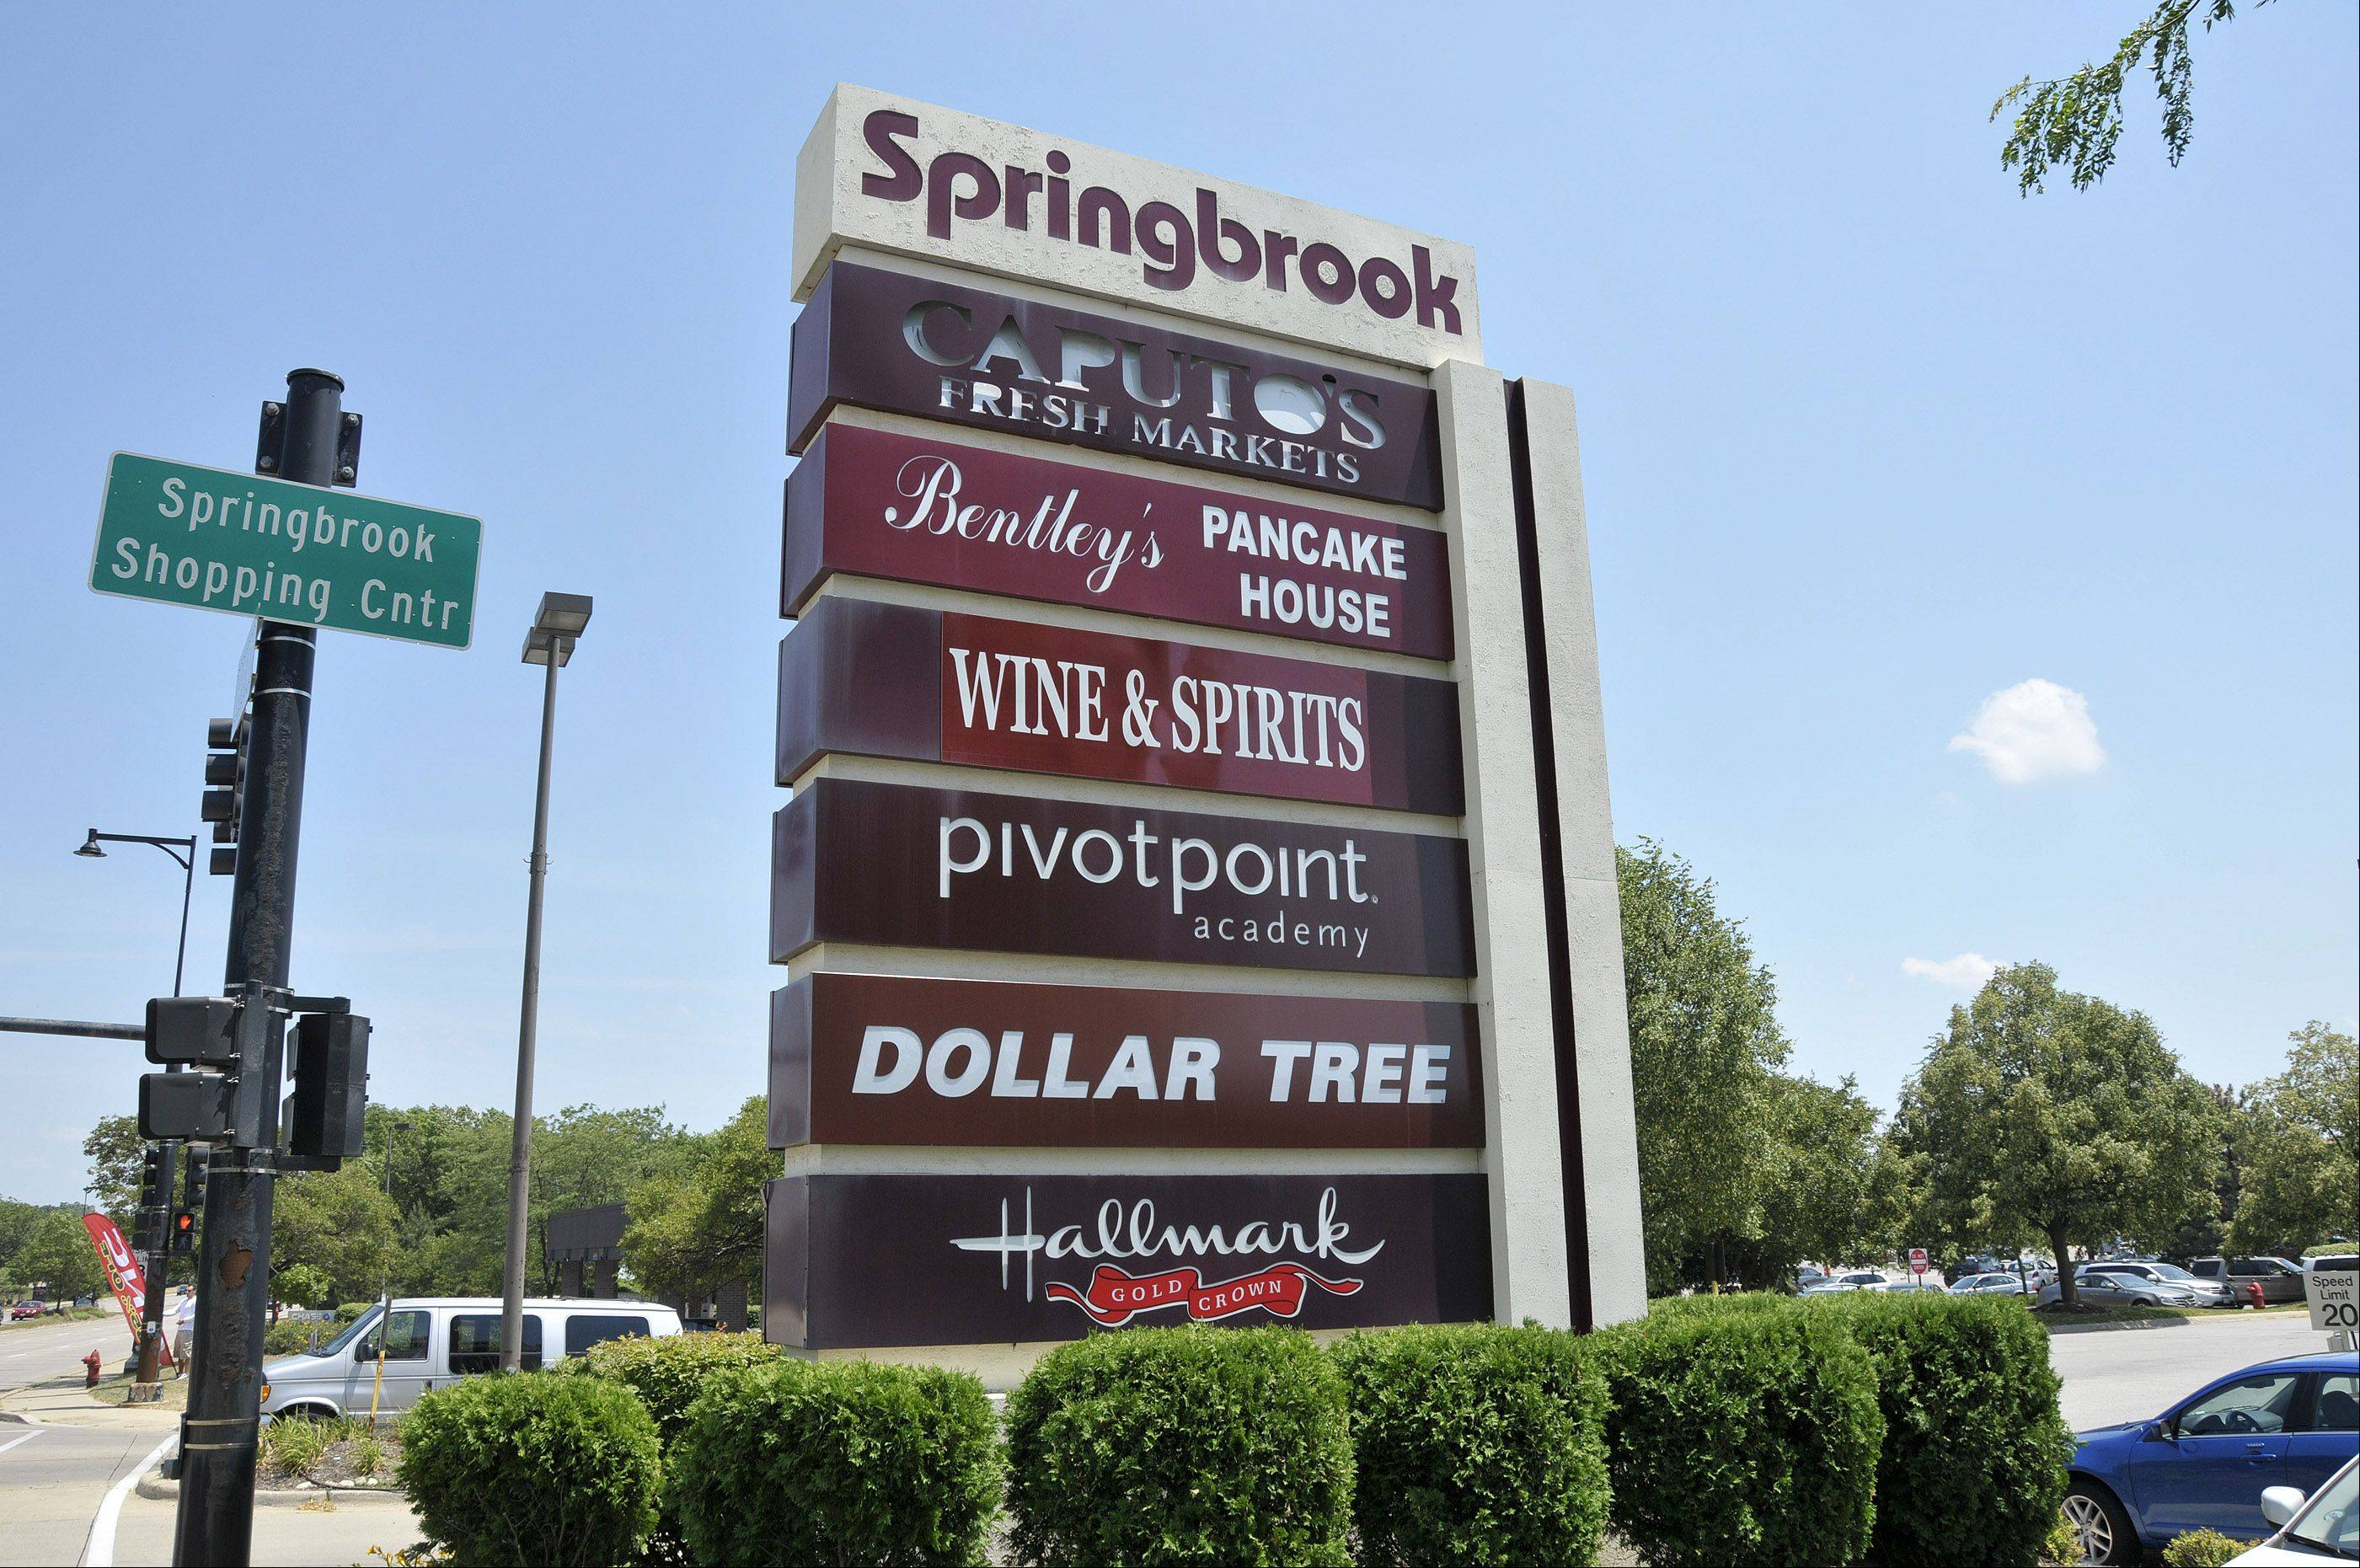 Bloomingdale considers $4.7 million upgrade for Springbrook